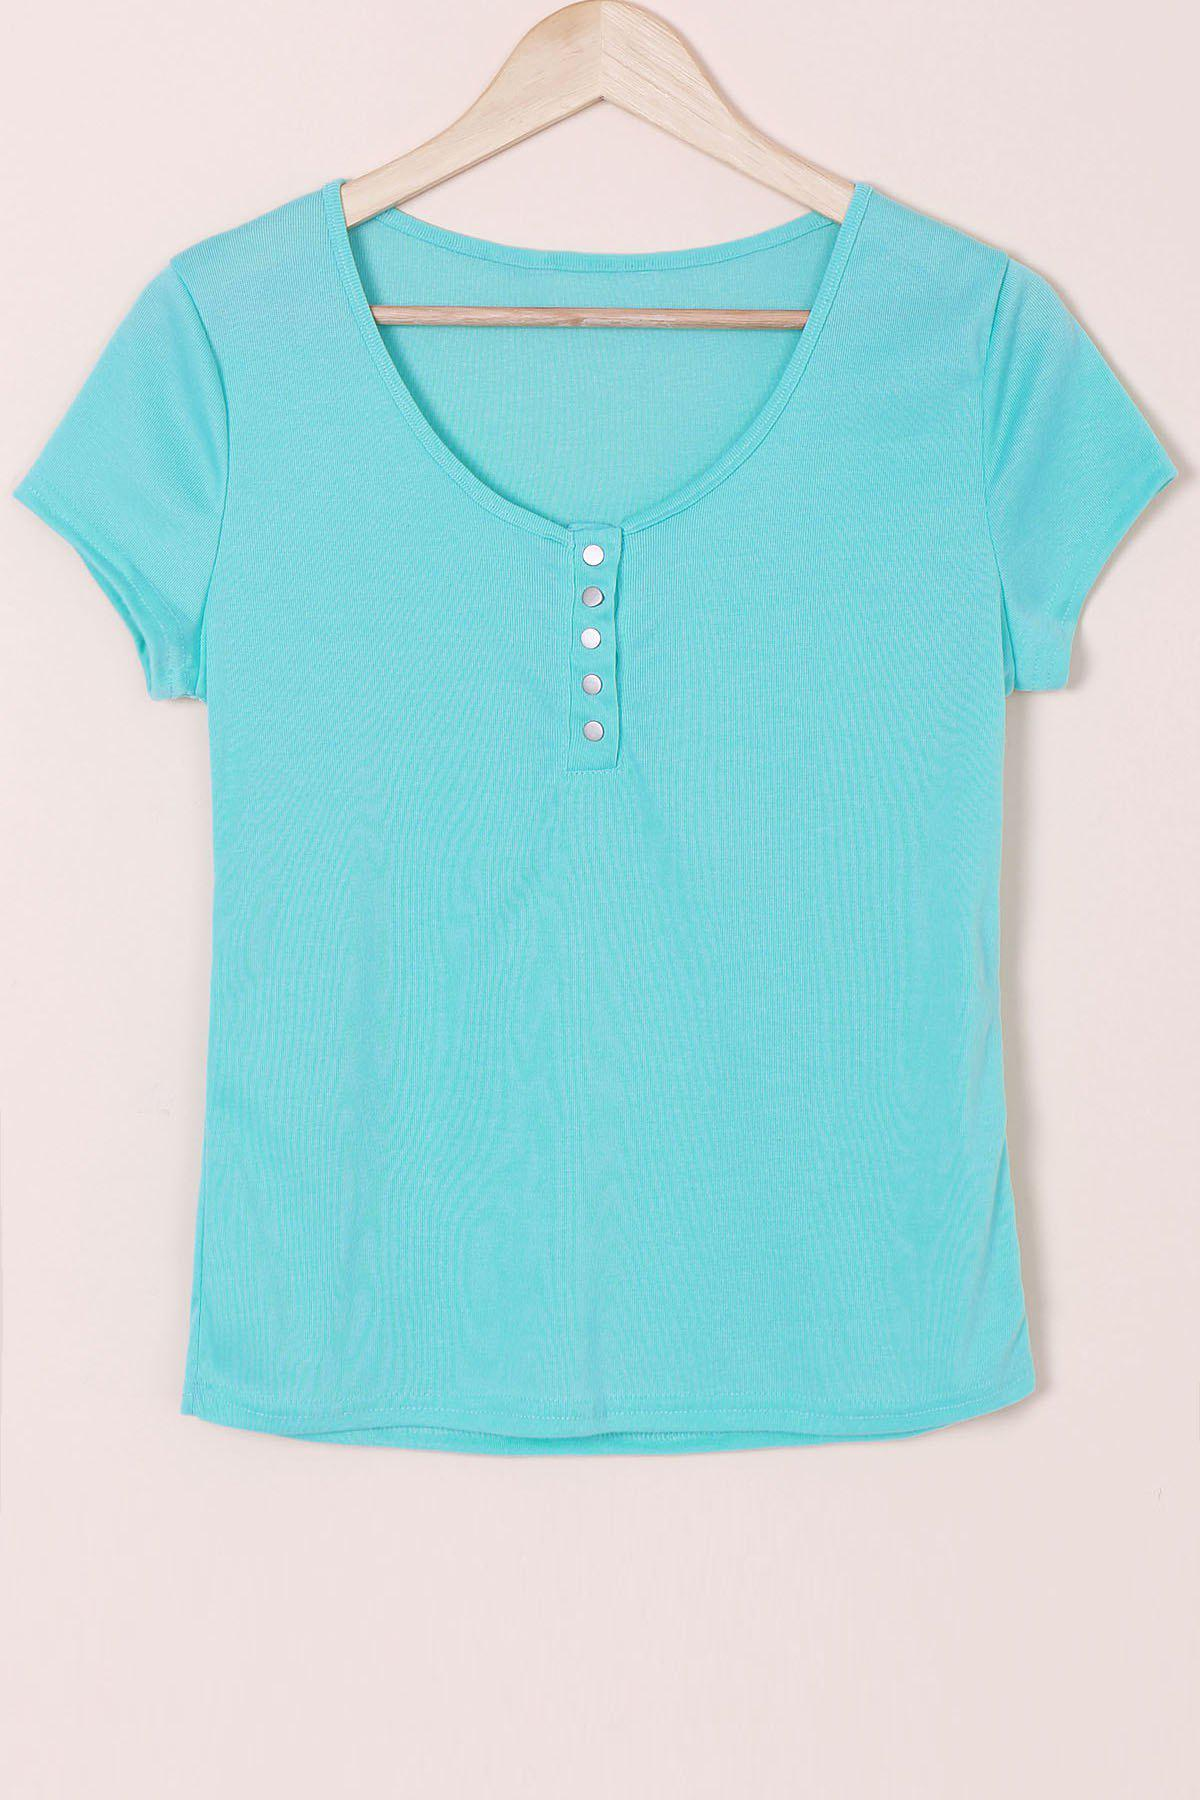 Scoop Neck Short Sleeve Solid Color Slimming T Shirt 172376620